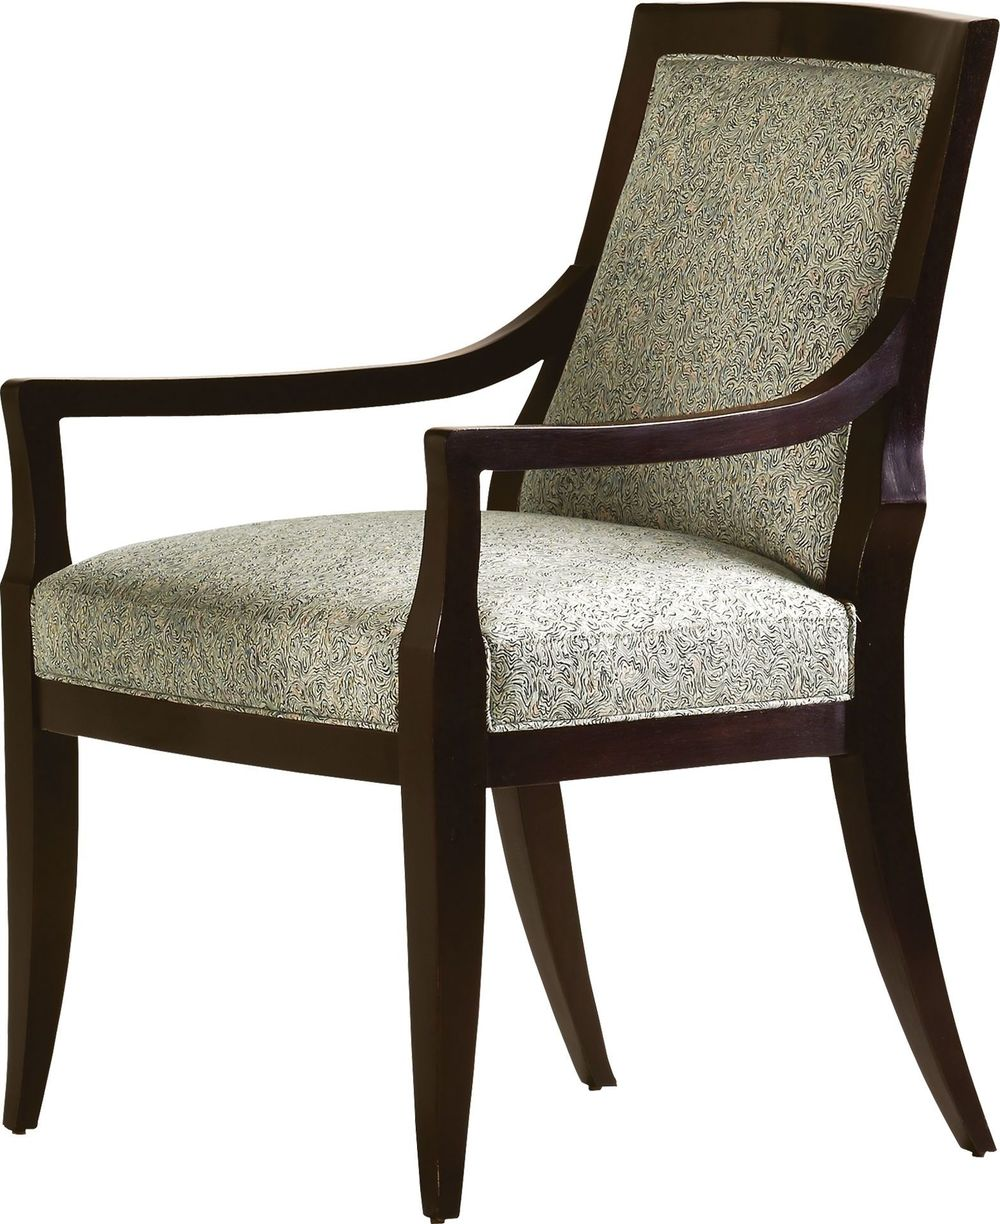 Baker Furniture - Vienna Upholstered Arm Chair